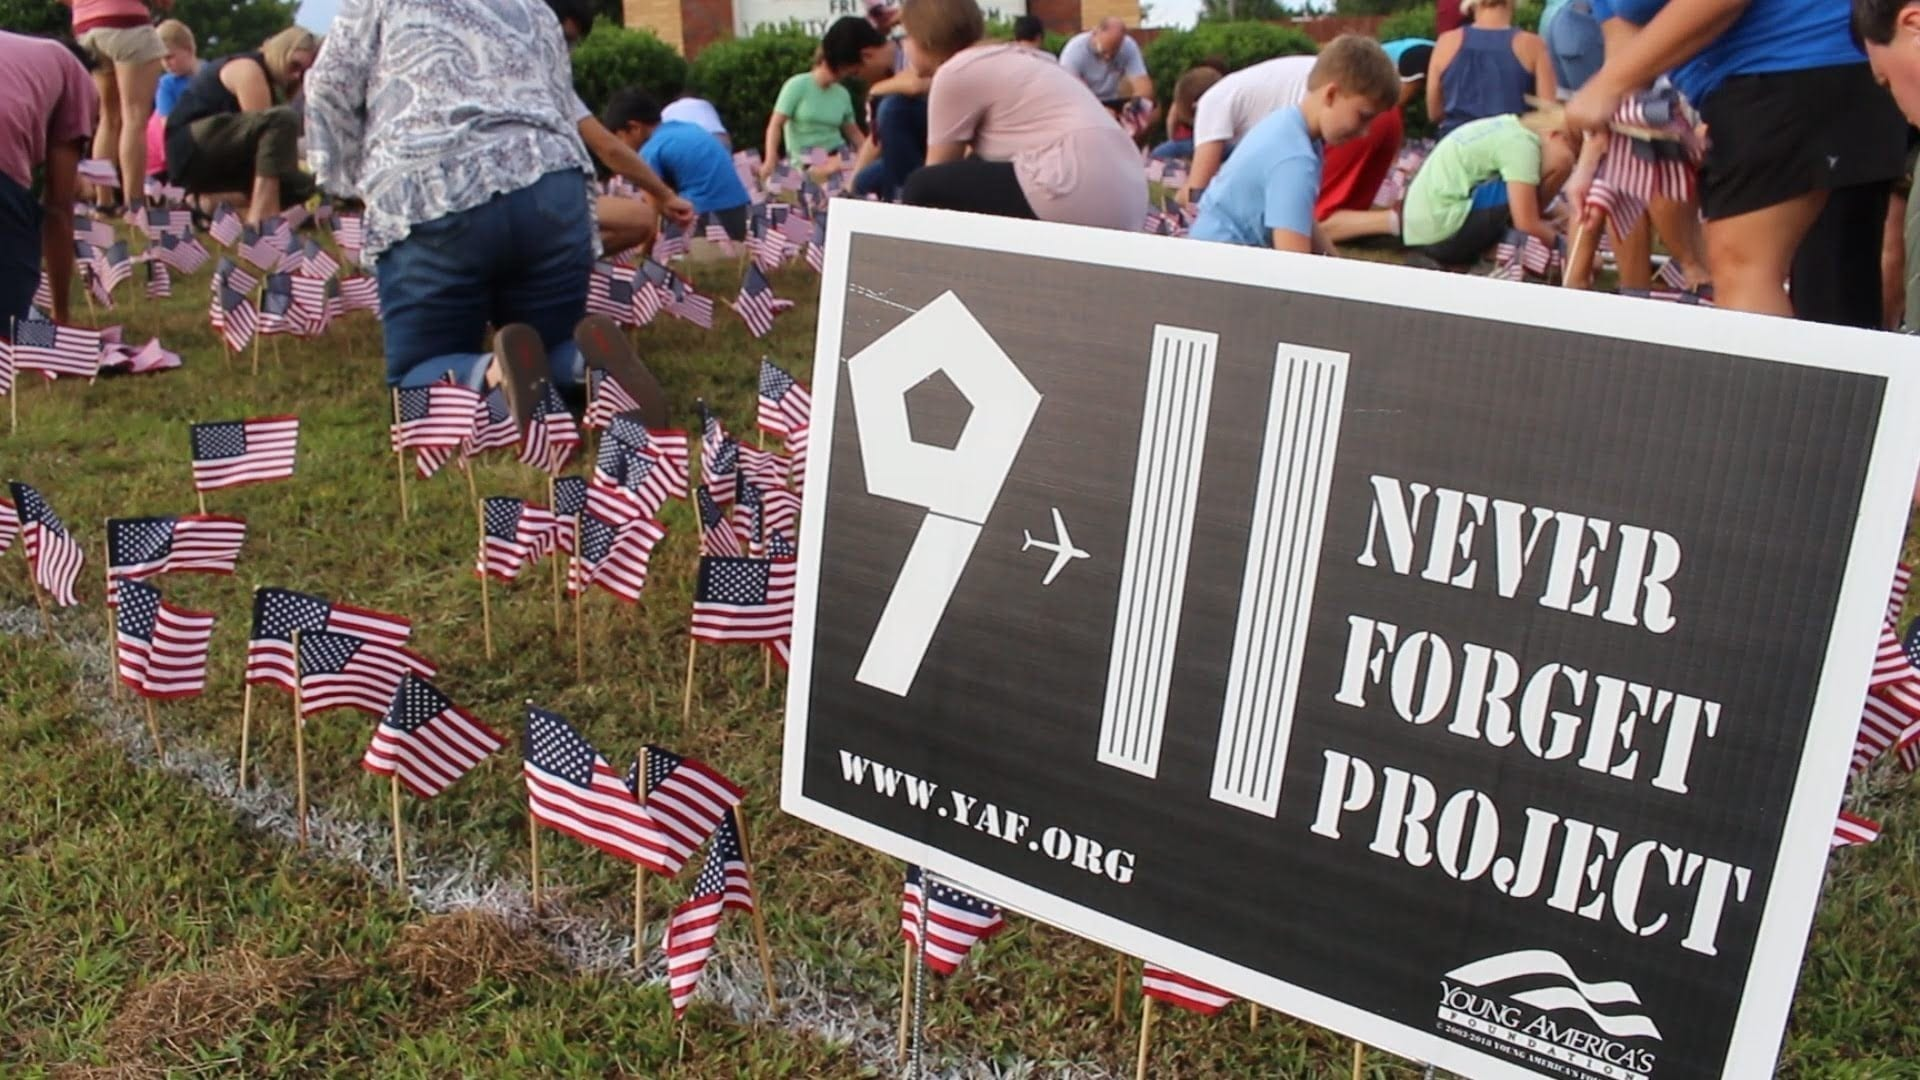 Oconee County Remembers 9/11 with Flag Display